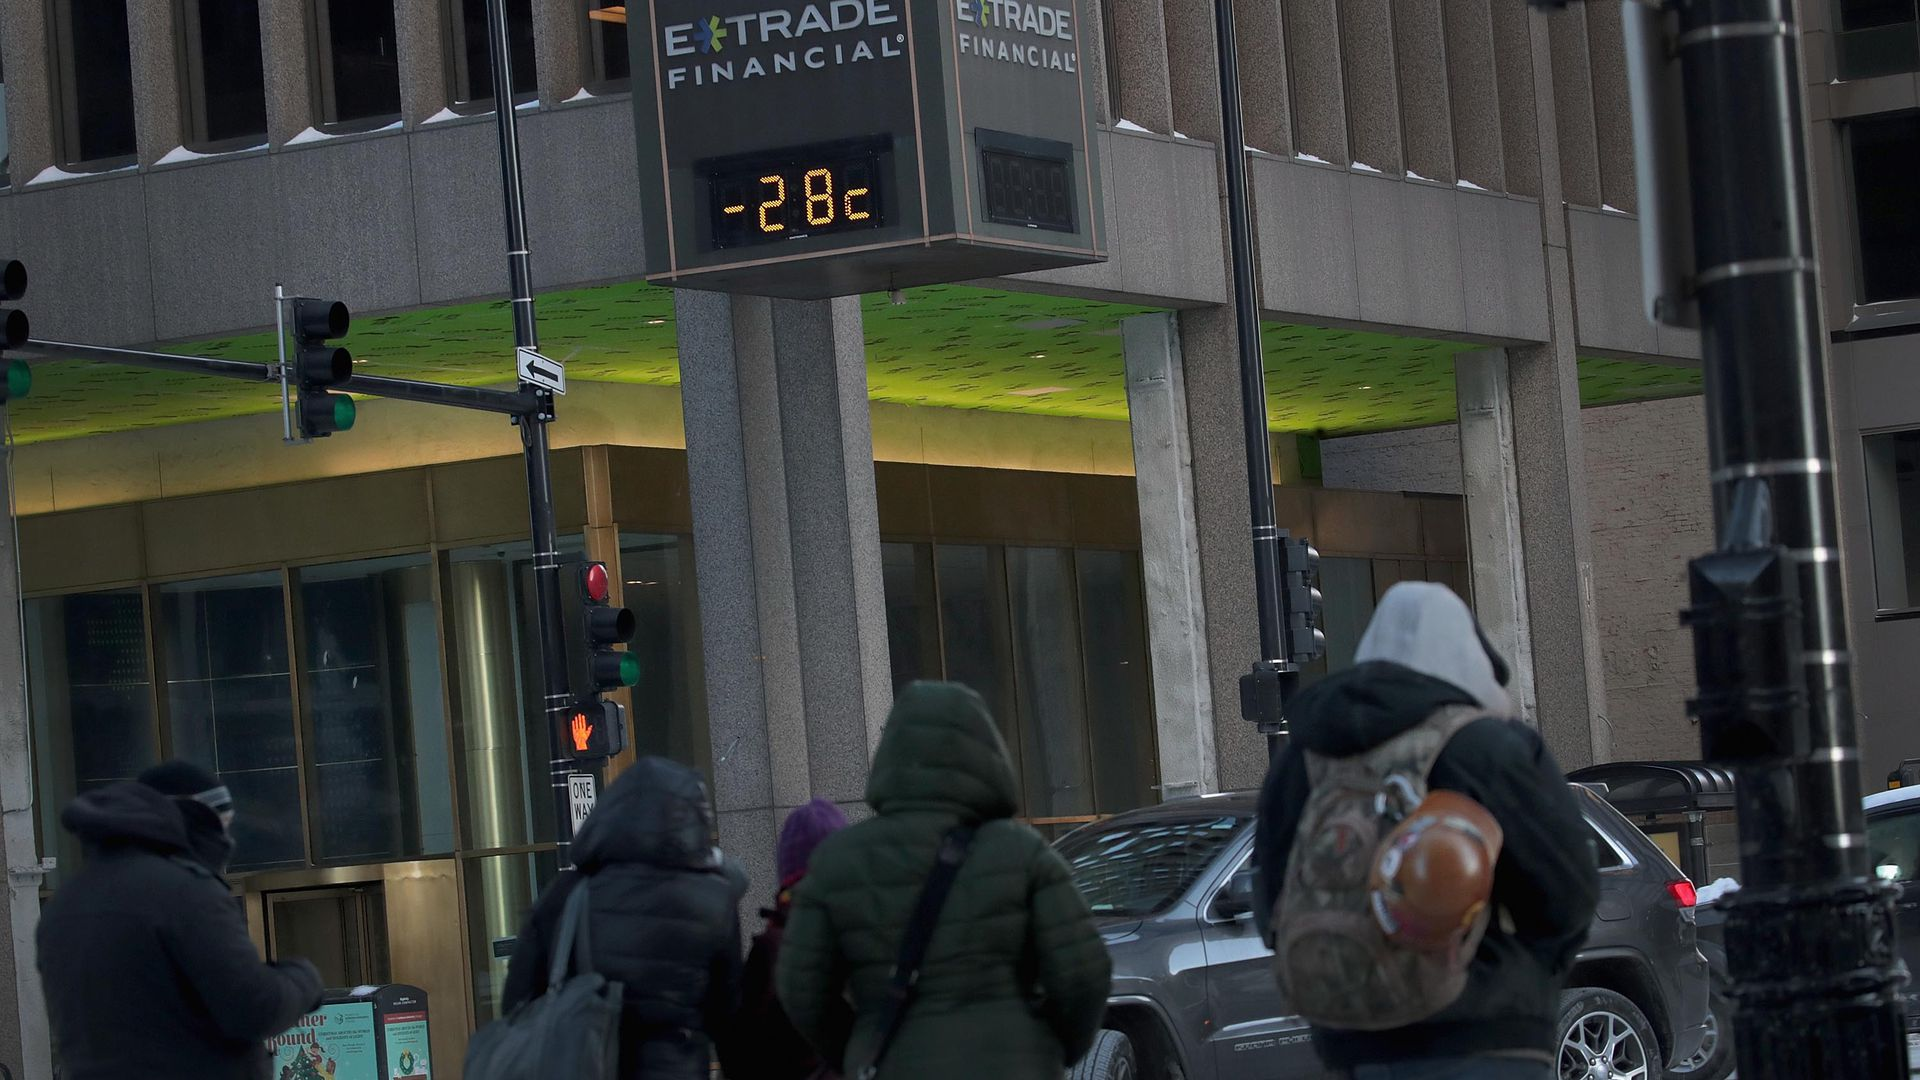 Etrade sign that shows the temperature as minus 21 degrees